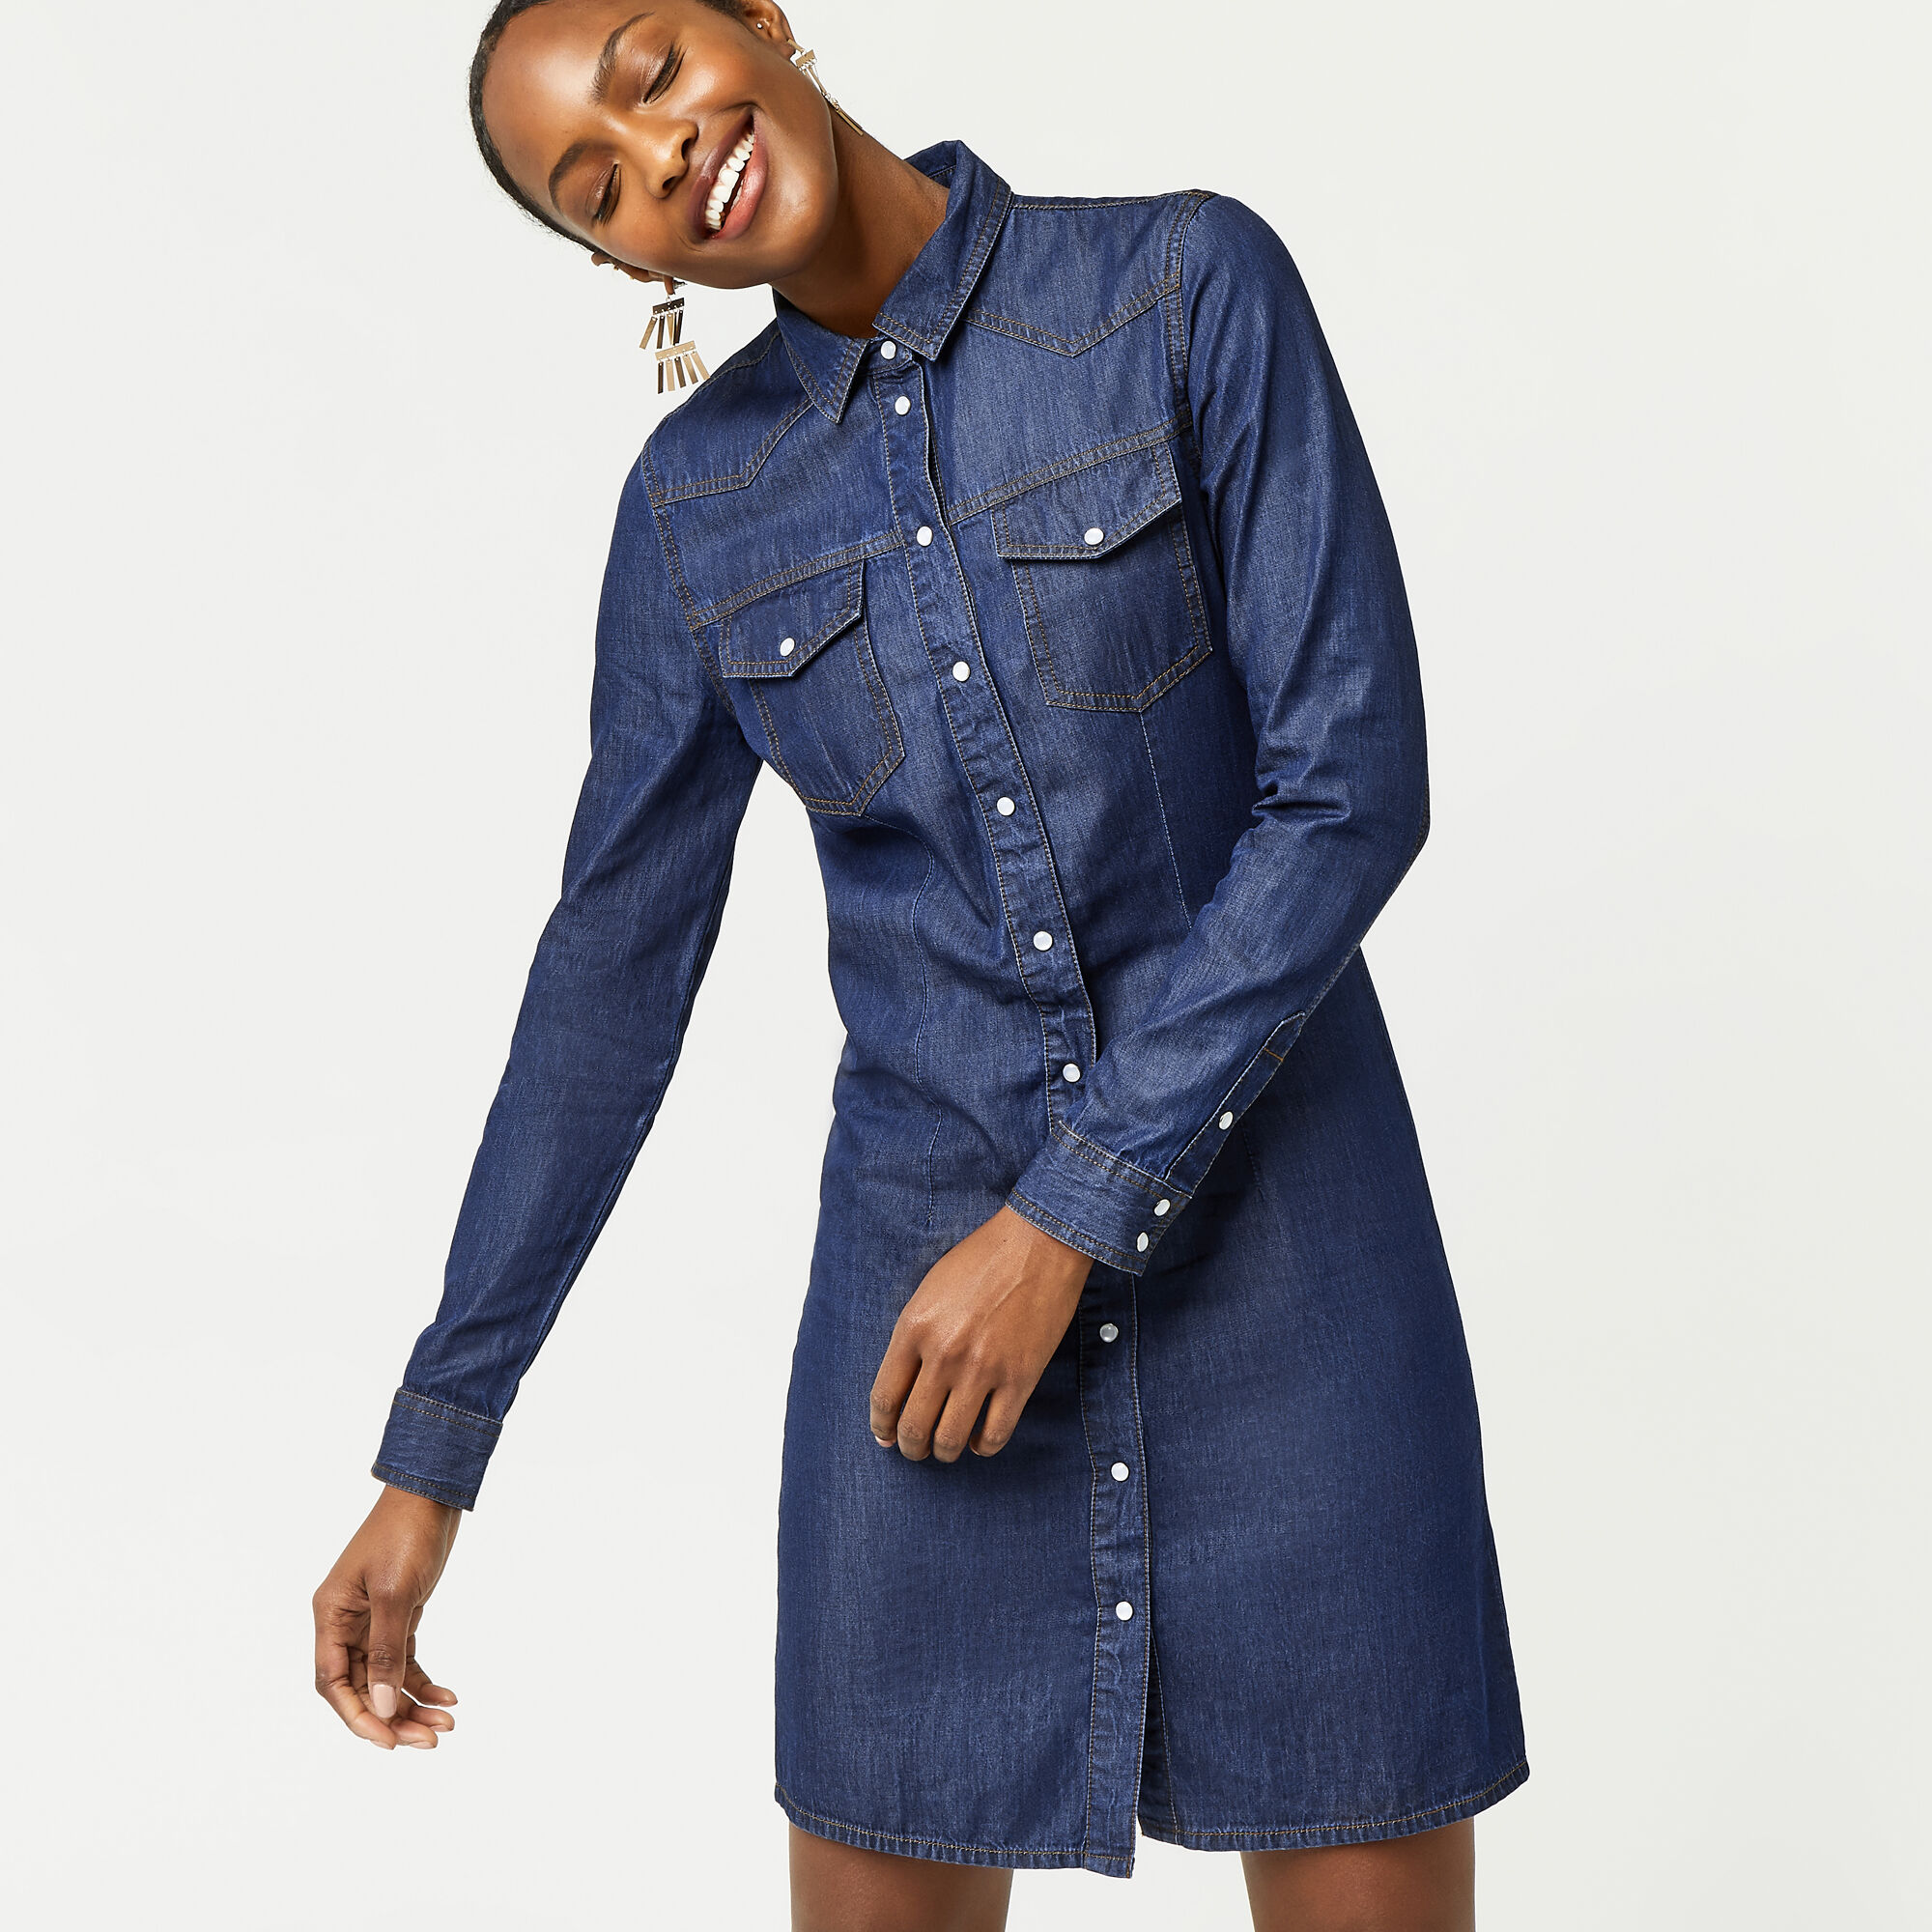 Warehouse, WESTERN SHIRT DRESS Dark Wash Denim 1